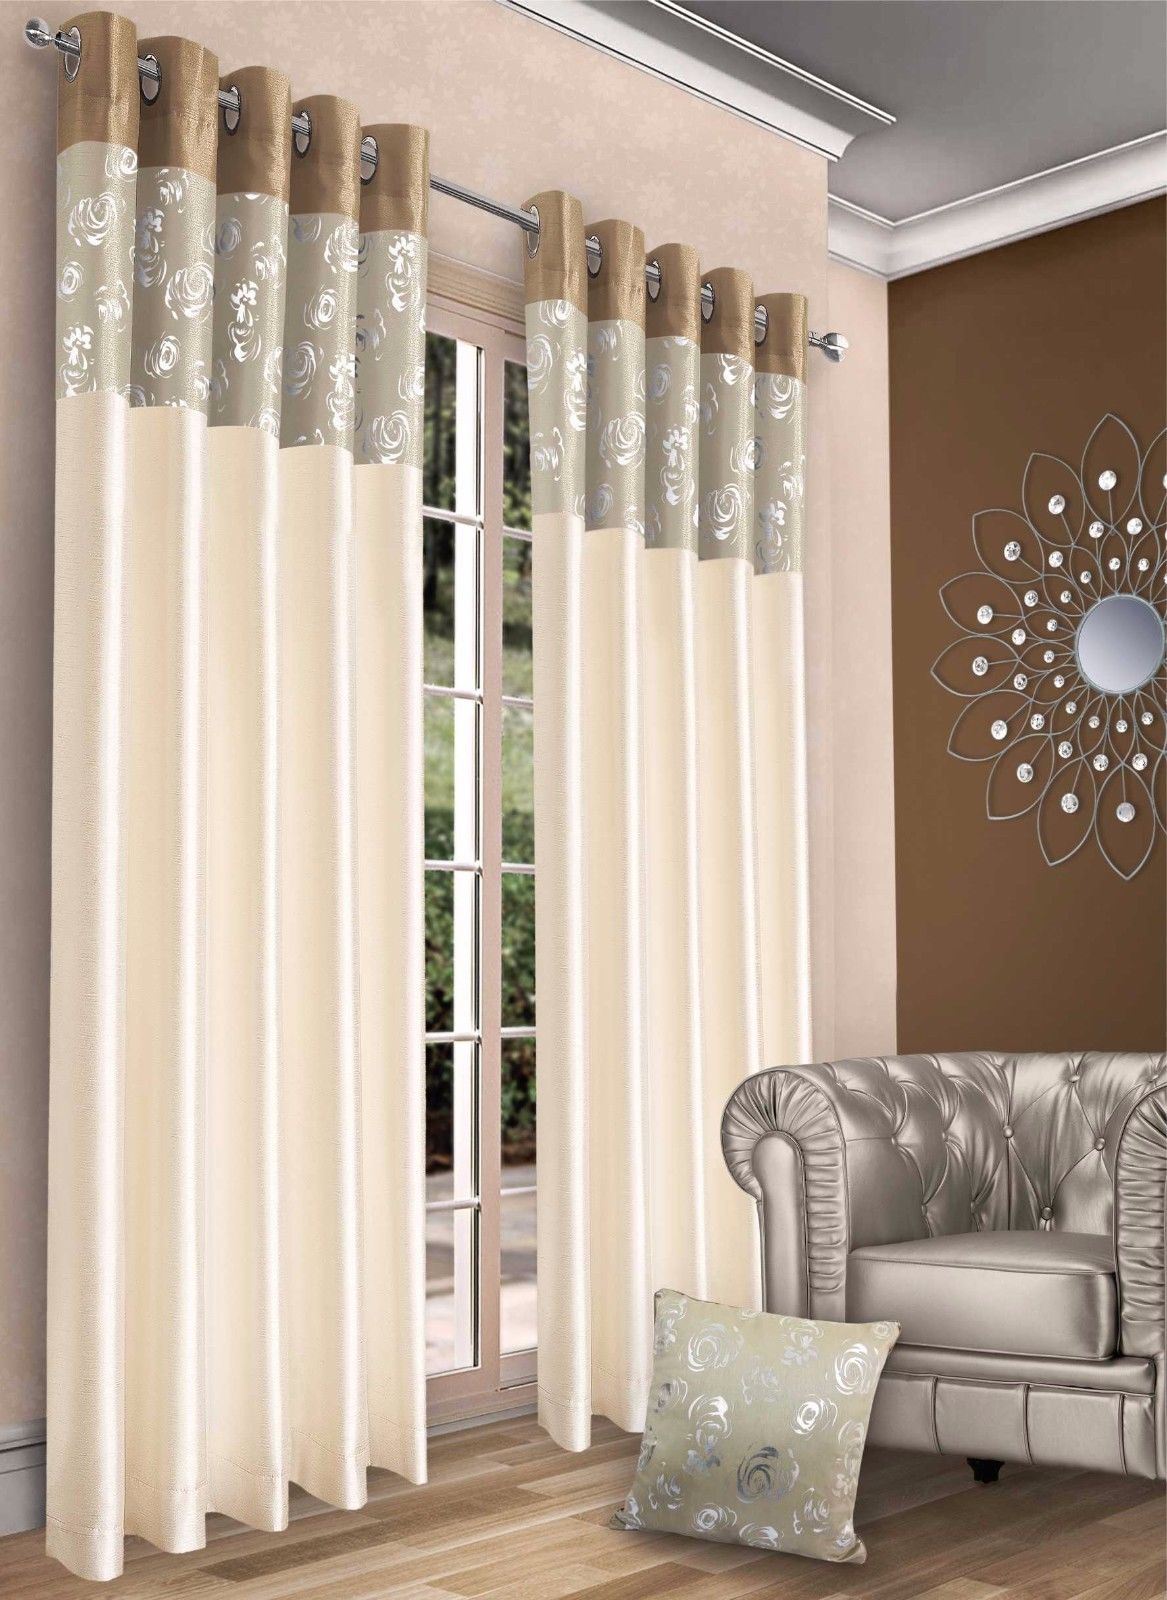 STYLISH CONTEMPORARY FAUX SILK RINGTOP EYELET LINED METALLIC FLORAL CURTAINS NATURAL LATTE COLOUR